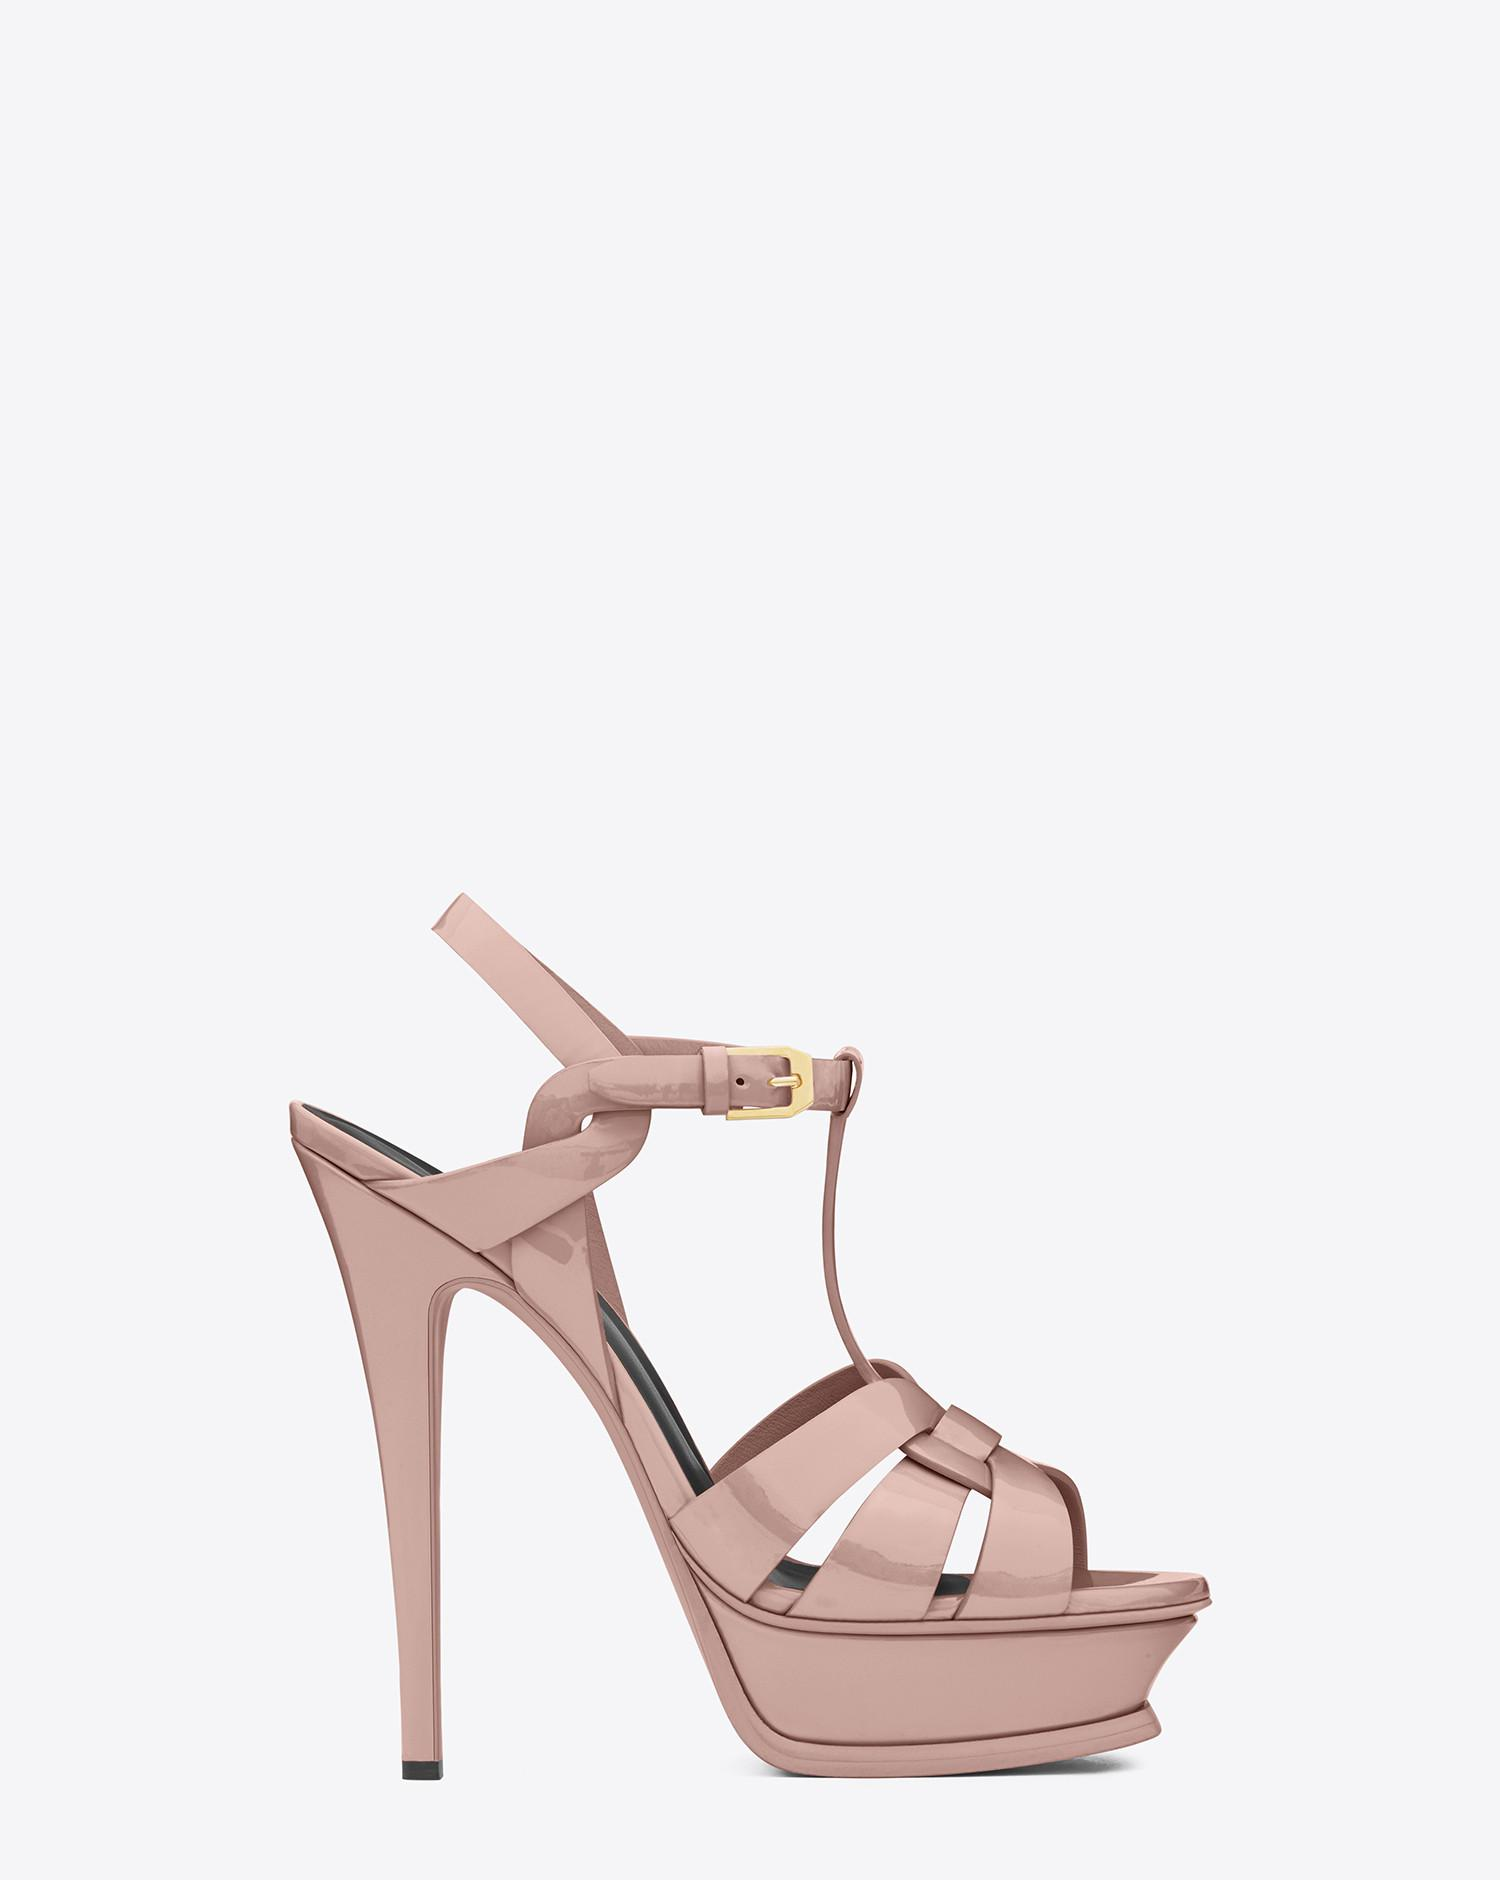 5aa13088ac3 Saint Laurent Tribute Sandal In Patent Leather in Pink - Lyst